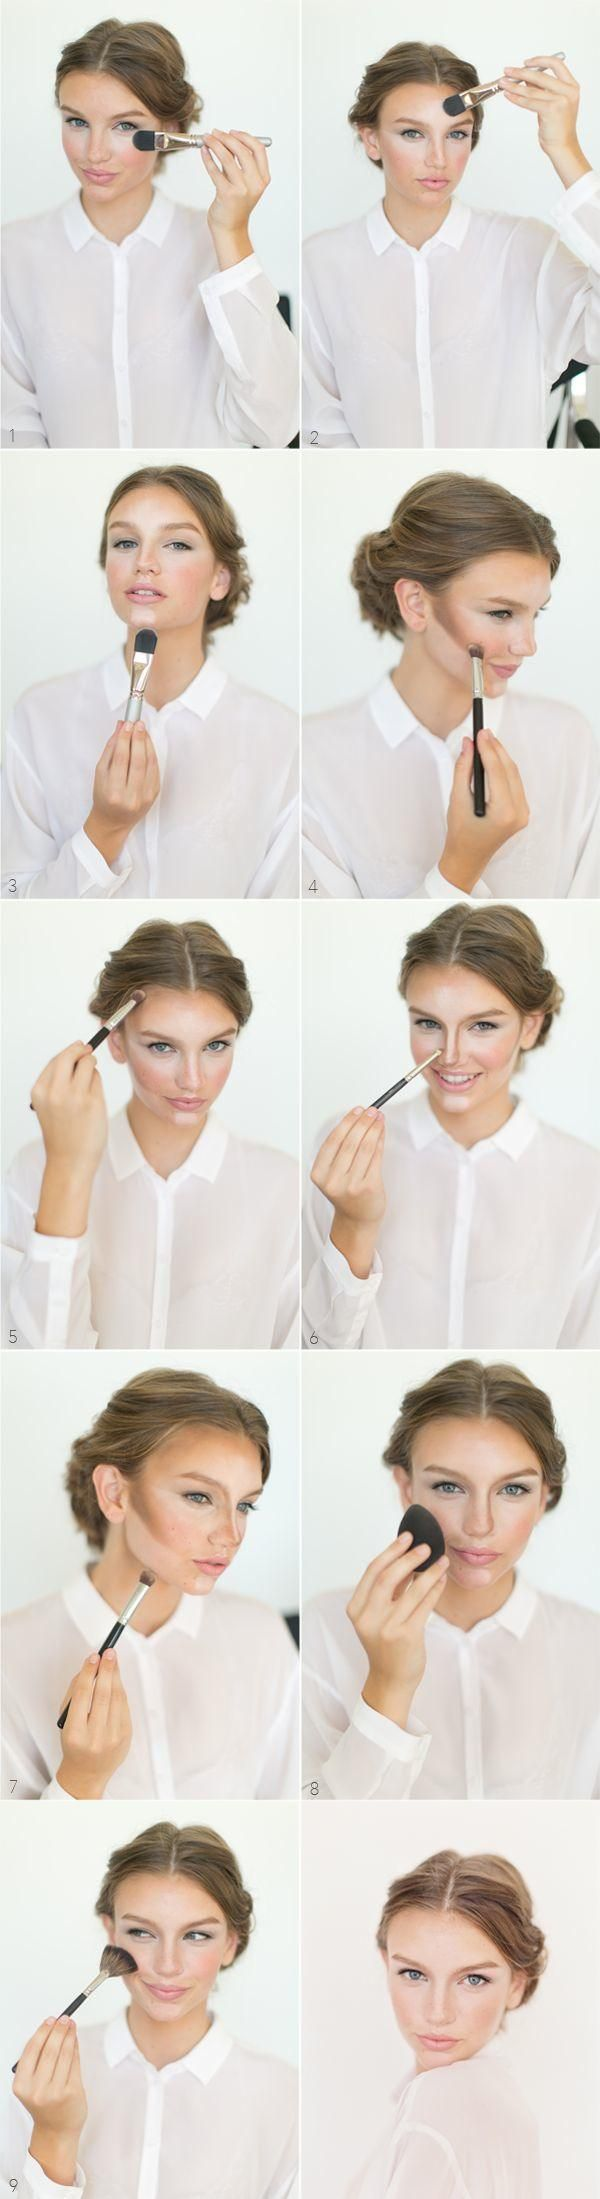 Once upon a time, before the world of blogs, social media and YouTube, what do you think brides did when they wanted to quickly learn how to do their makeup? Luckily for us, we don't have that problem anymore. For a natural makeup look with a little oomph, we love a subtle glamourous eye paired with […]